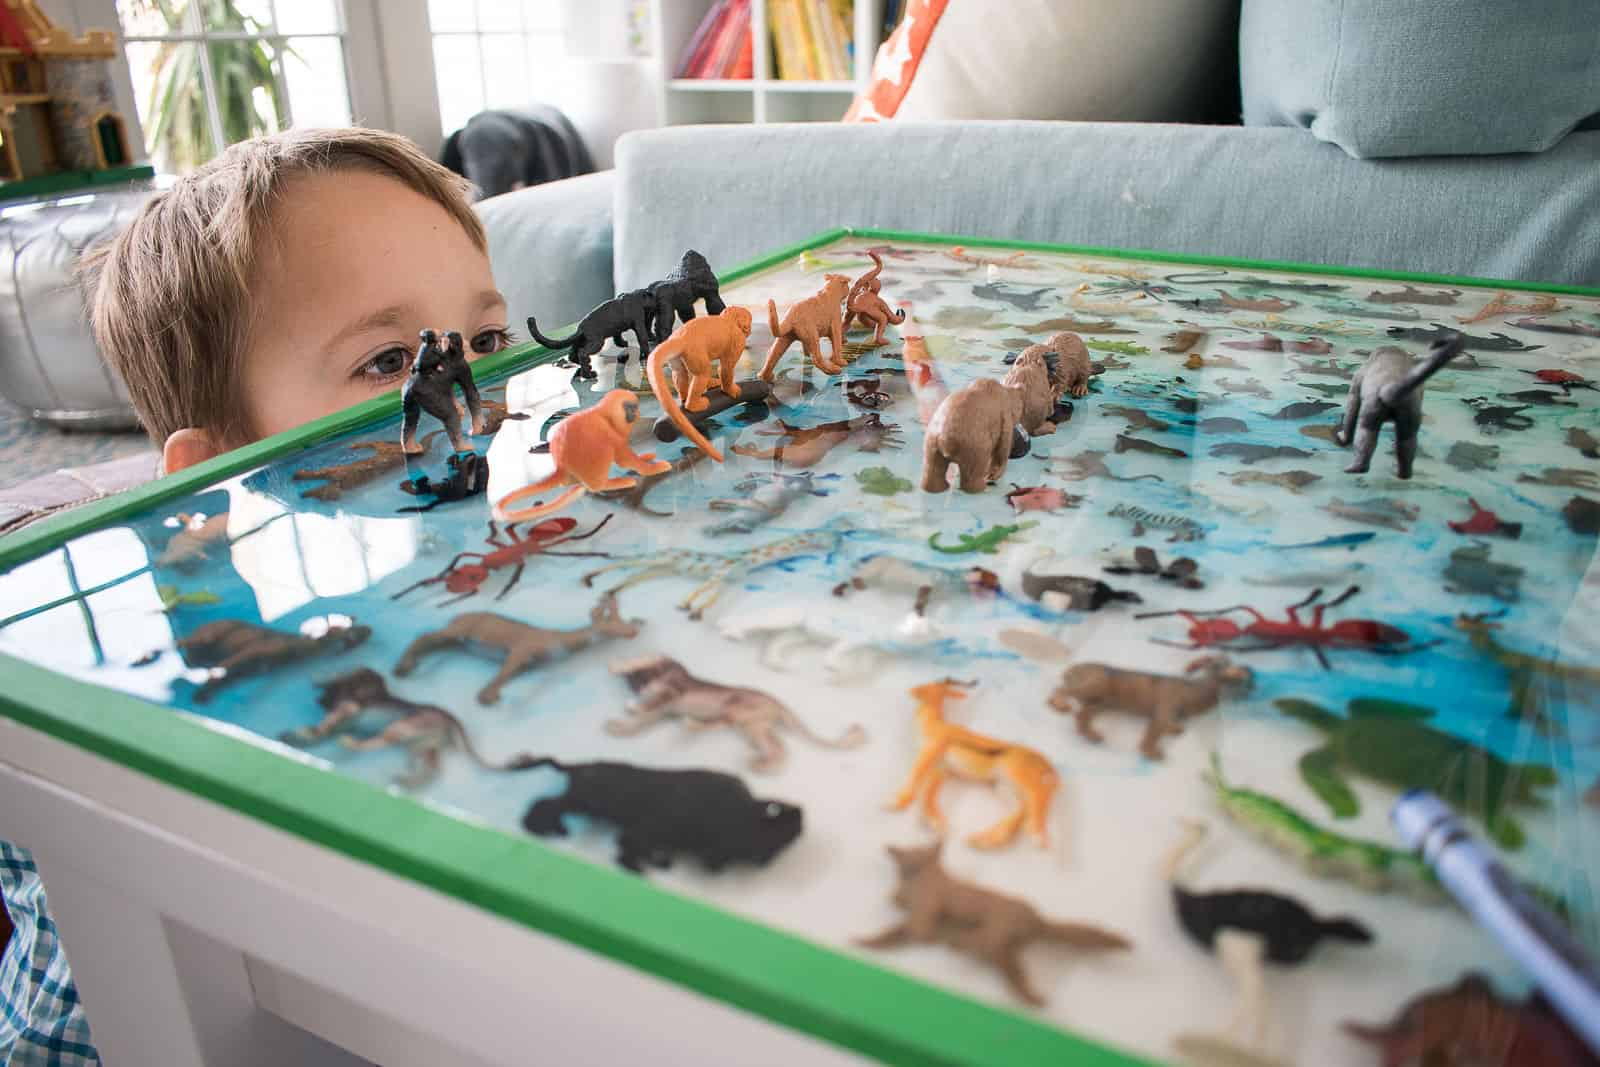 toy animals set into epoxy for table top